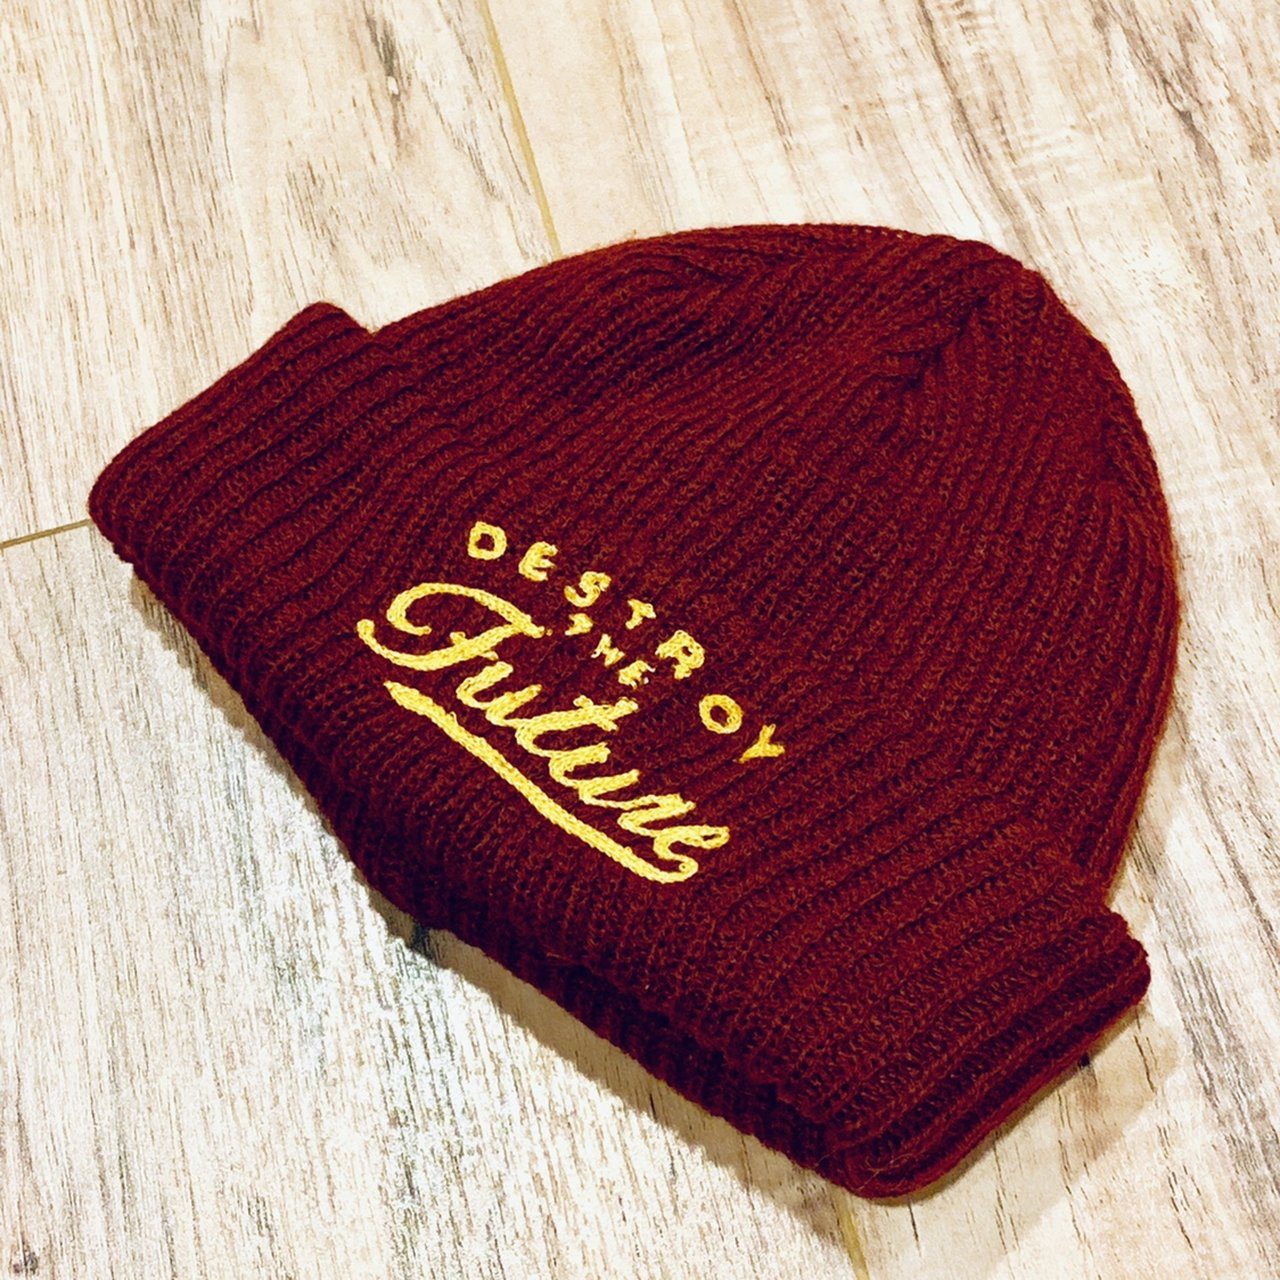 LOSER MACHINE FISHERMAN BEANIE BURGUNDY MUSTARD FRENCH LOOP - Depop 1c3e9975e89